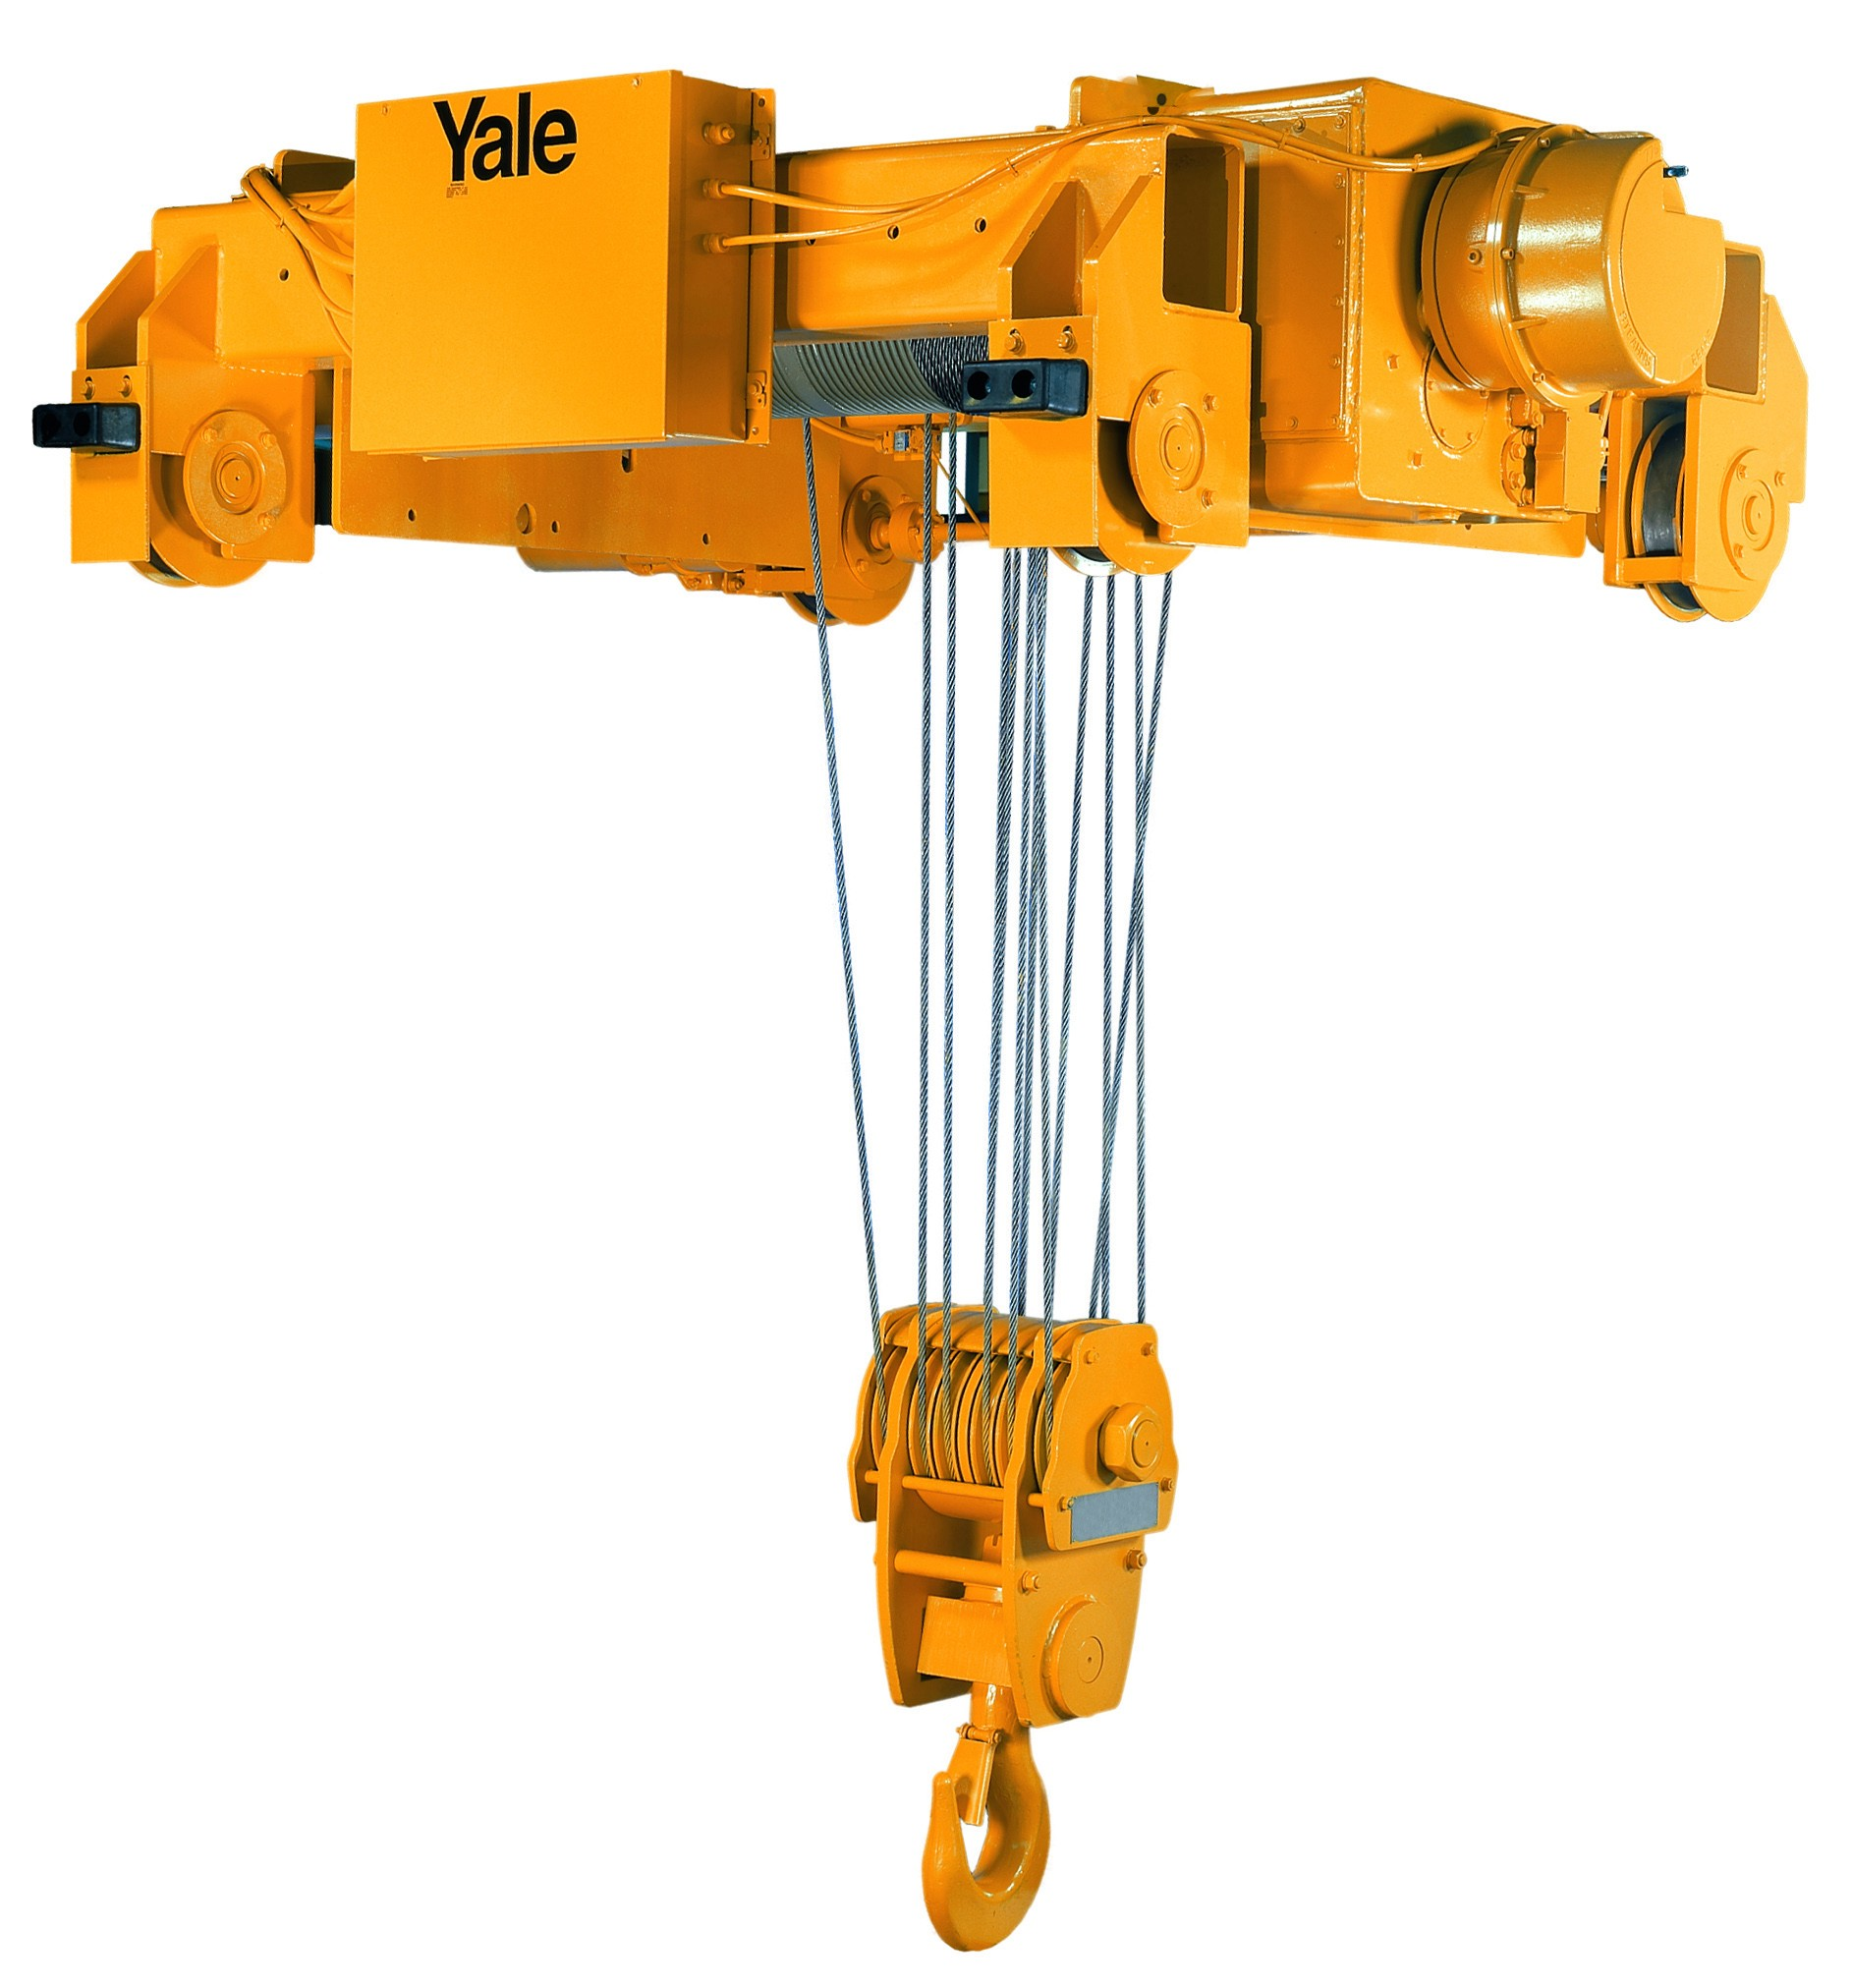 hight resolution of yale cable king 10 ton electric wire rope hoist 46fpm 145 lift single reeve